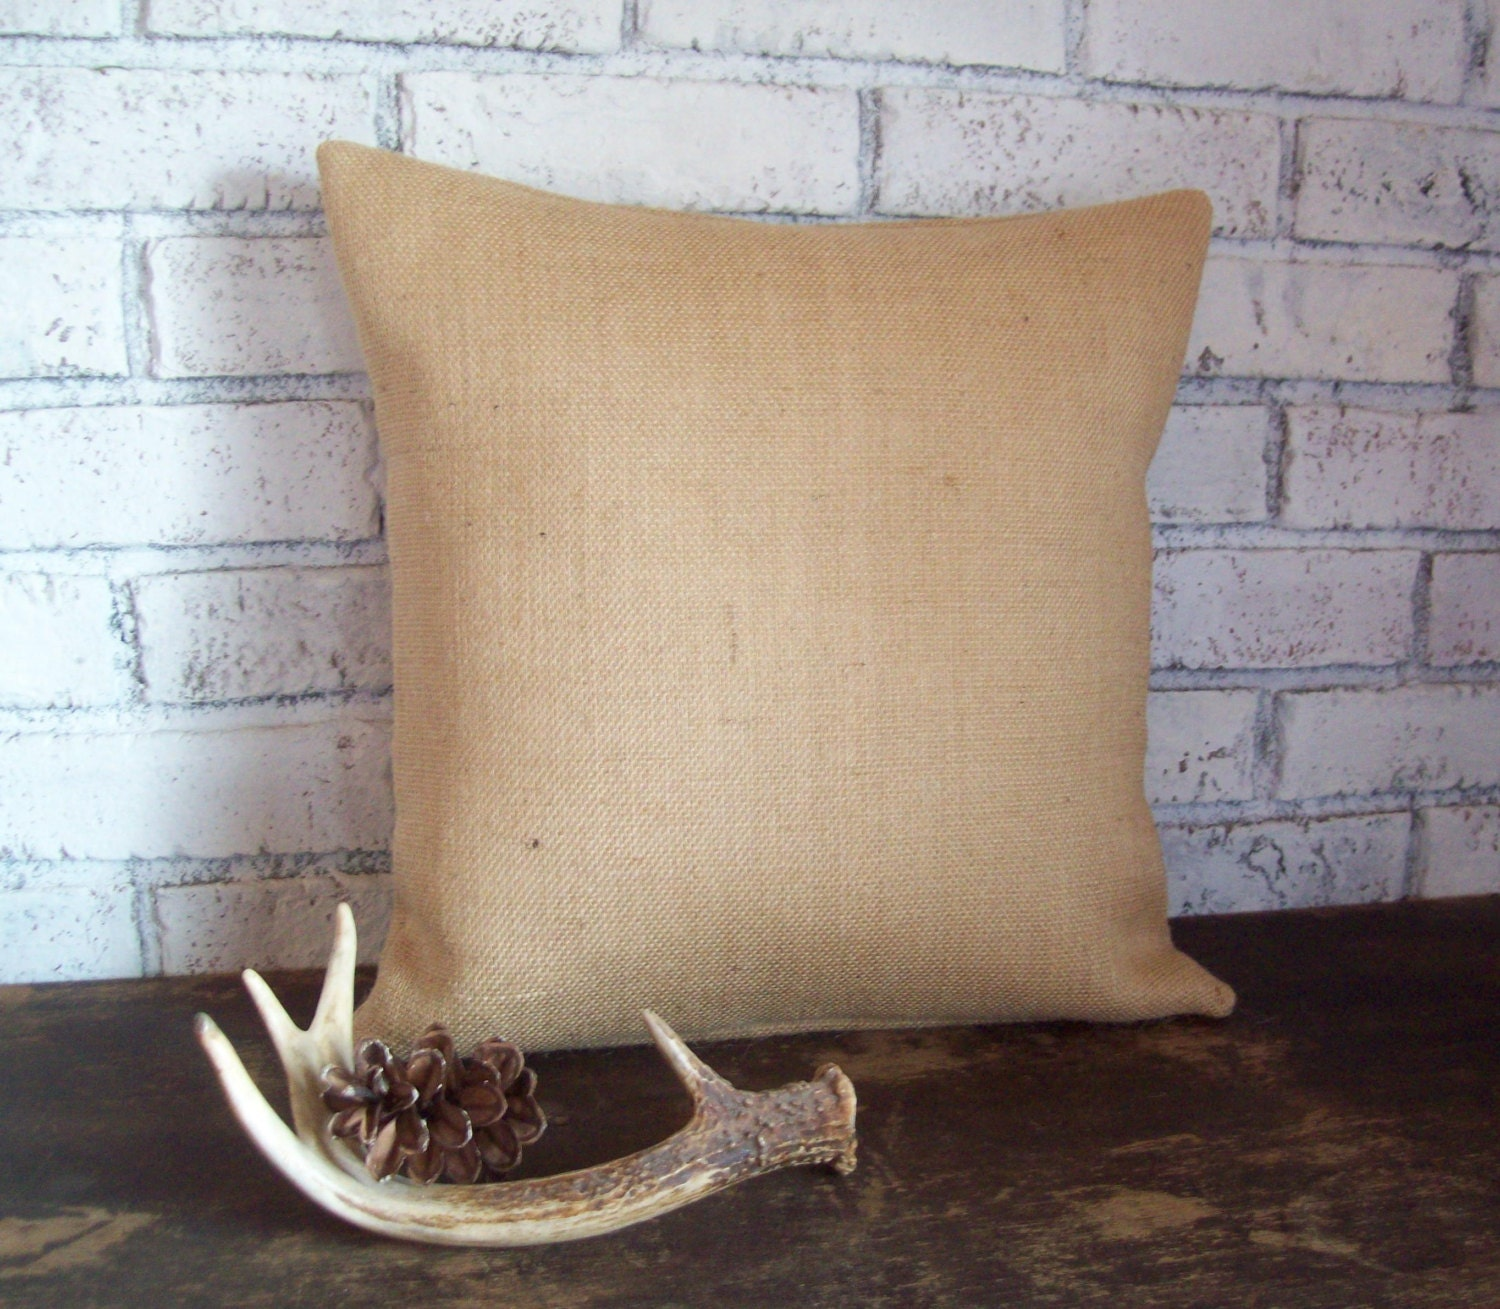 Decorative Burlap Pillow Covers : Burlap Pillow Cover Rustic Decorative by NorthCountryComforts